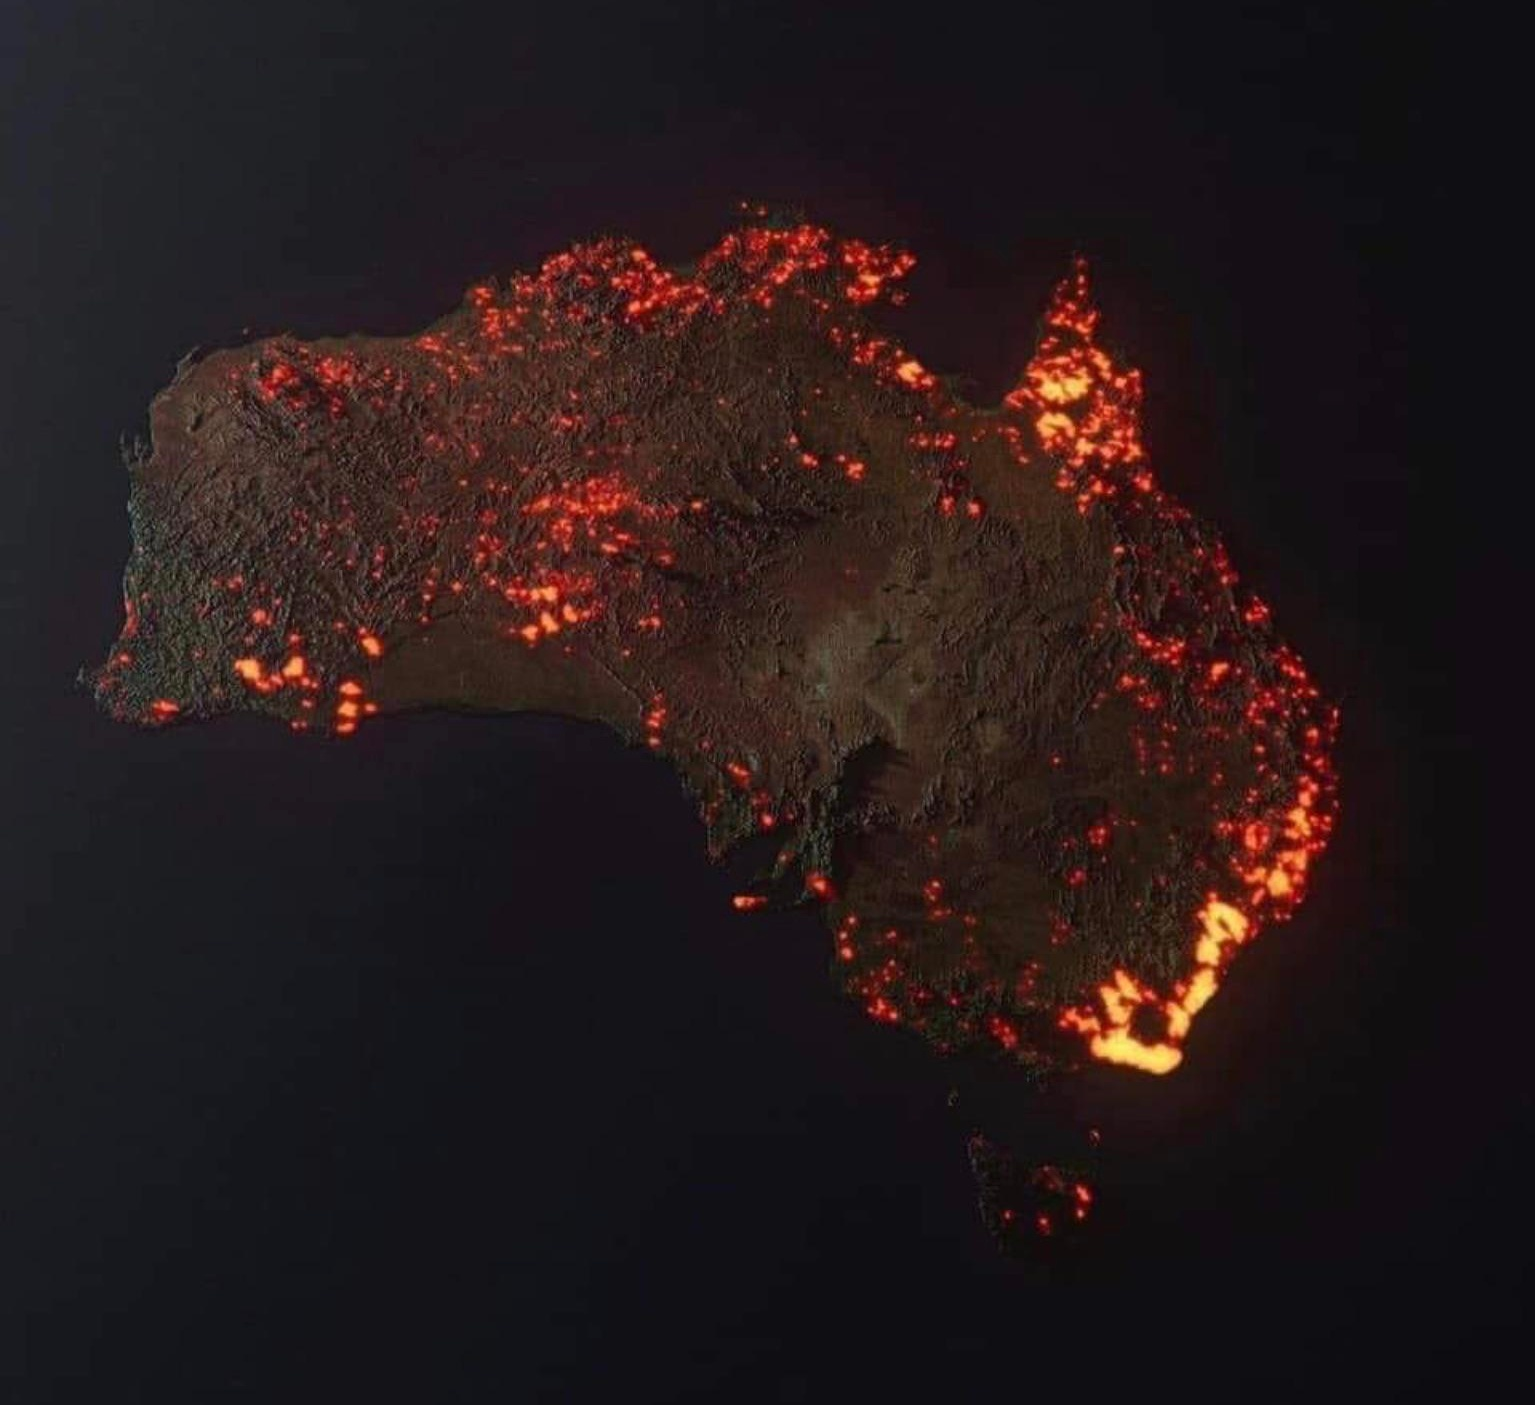 3D visualization of the fires in Australia